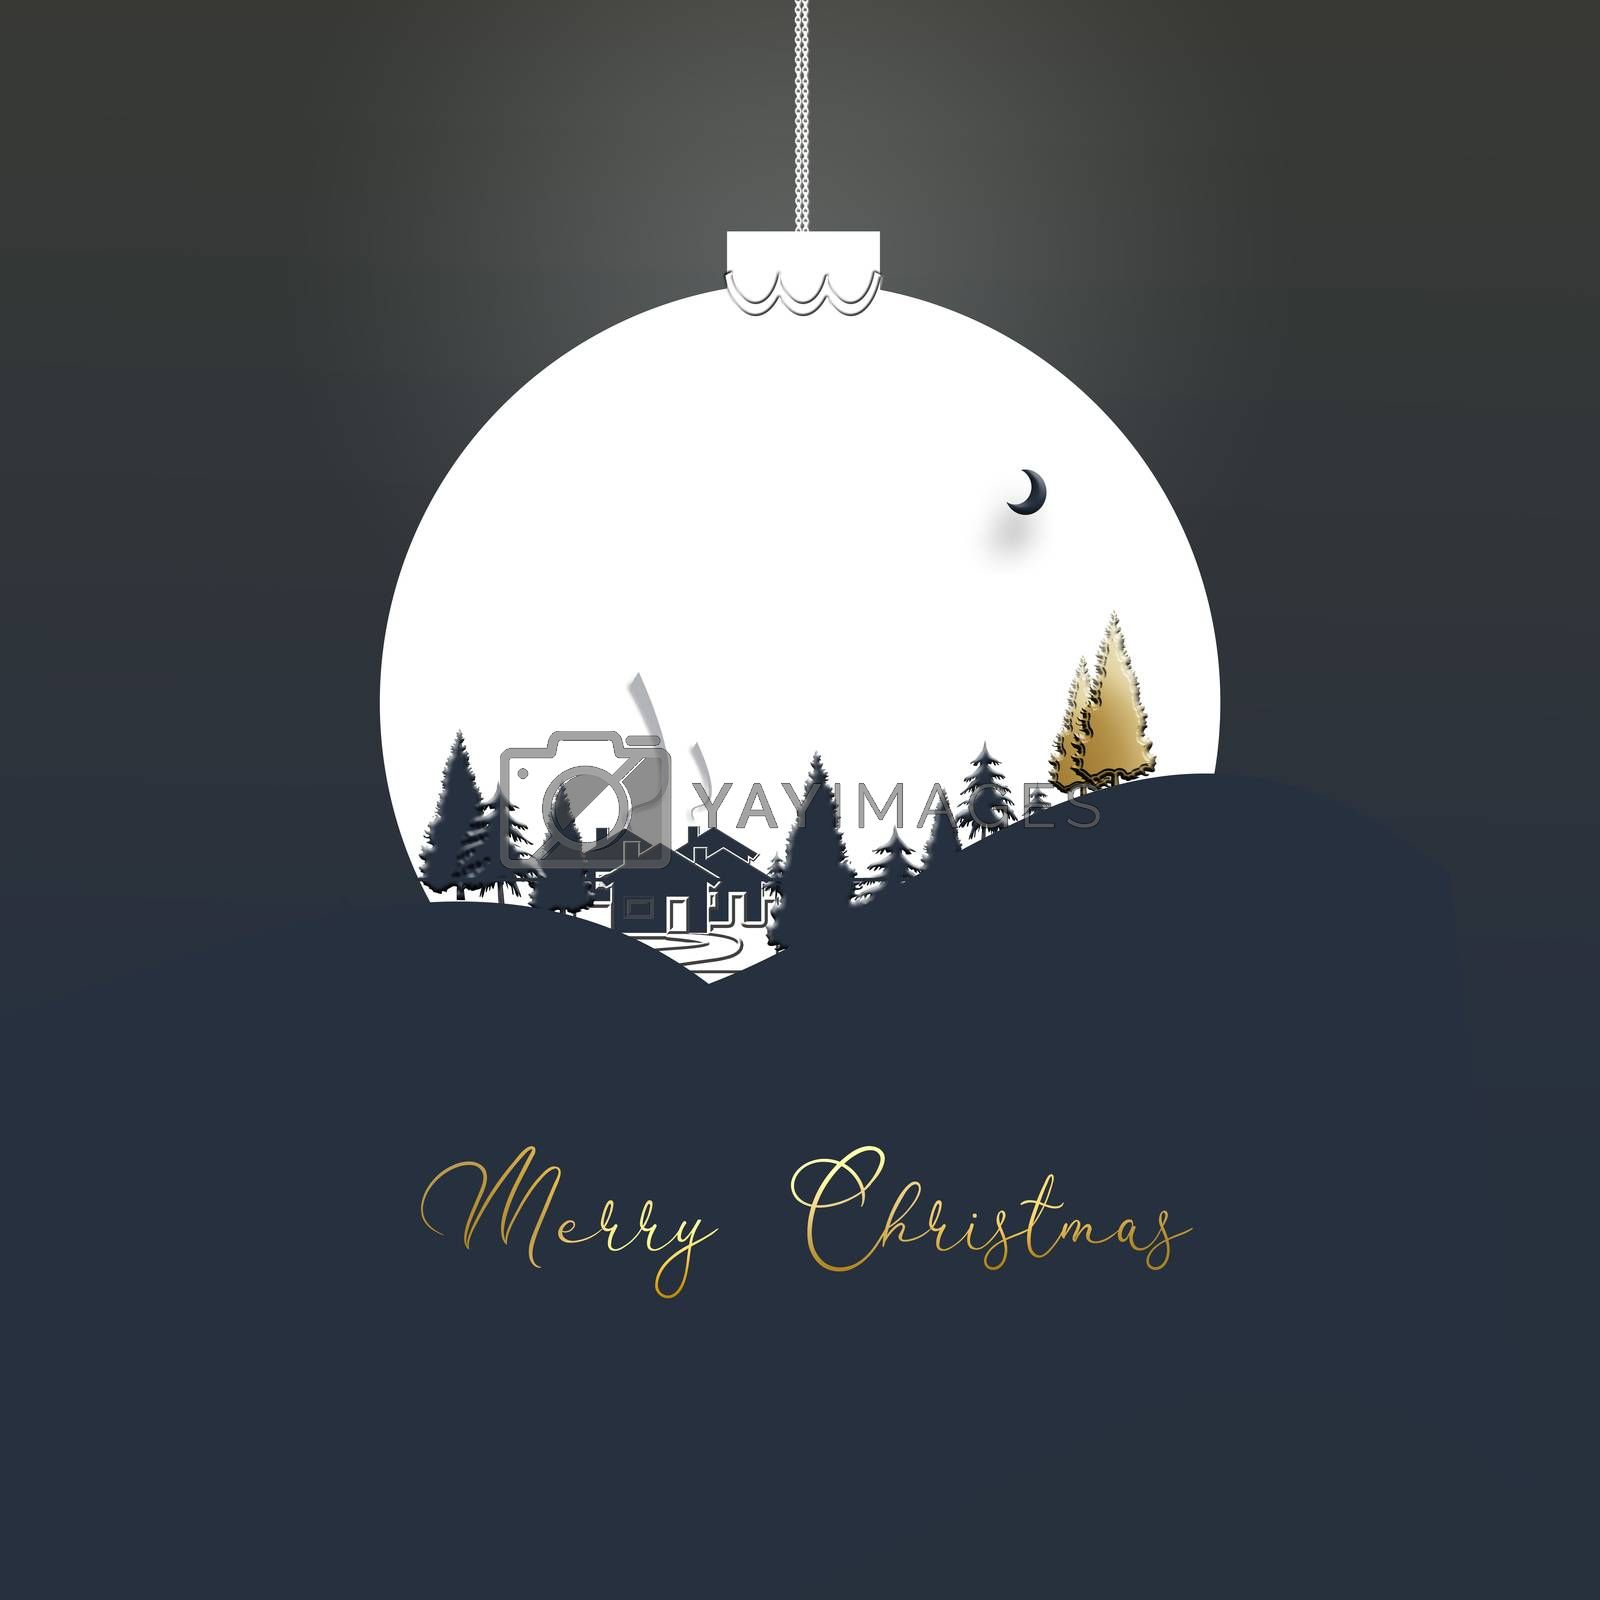 Winter landscape with houses, trees, firs in a white Christmas ball on blue background. Text Merry Christmas. 3D illustration